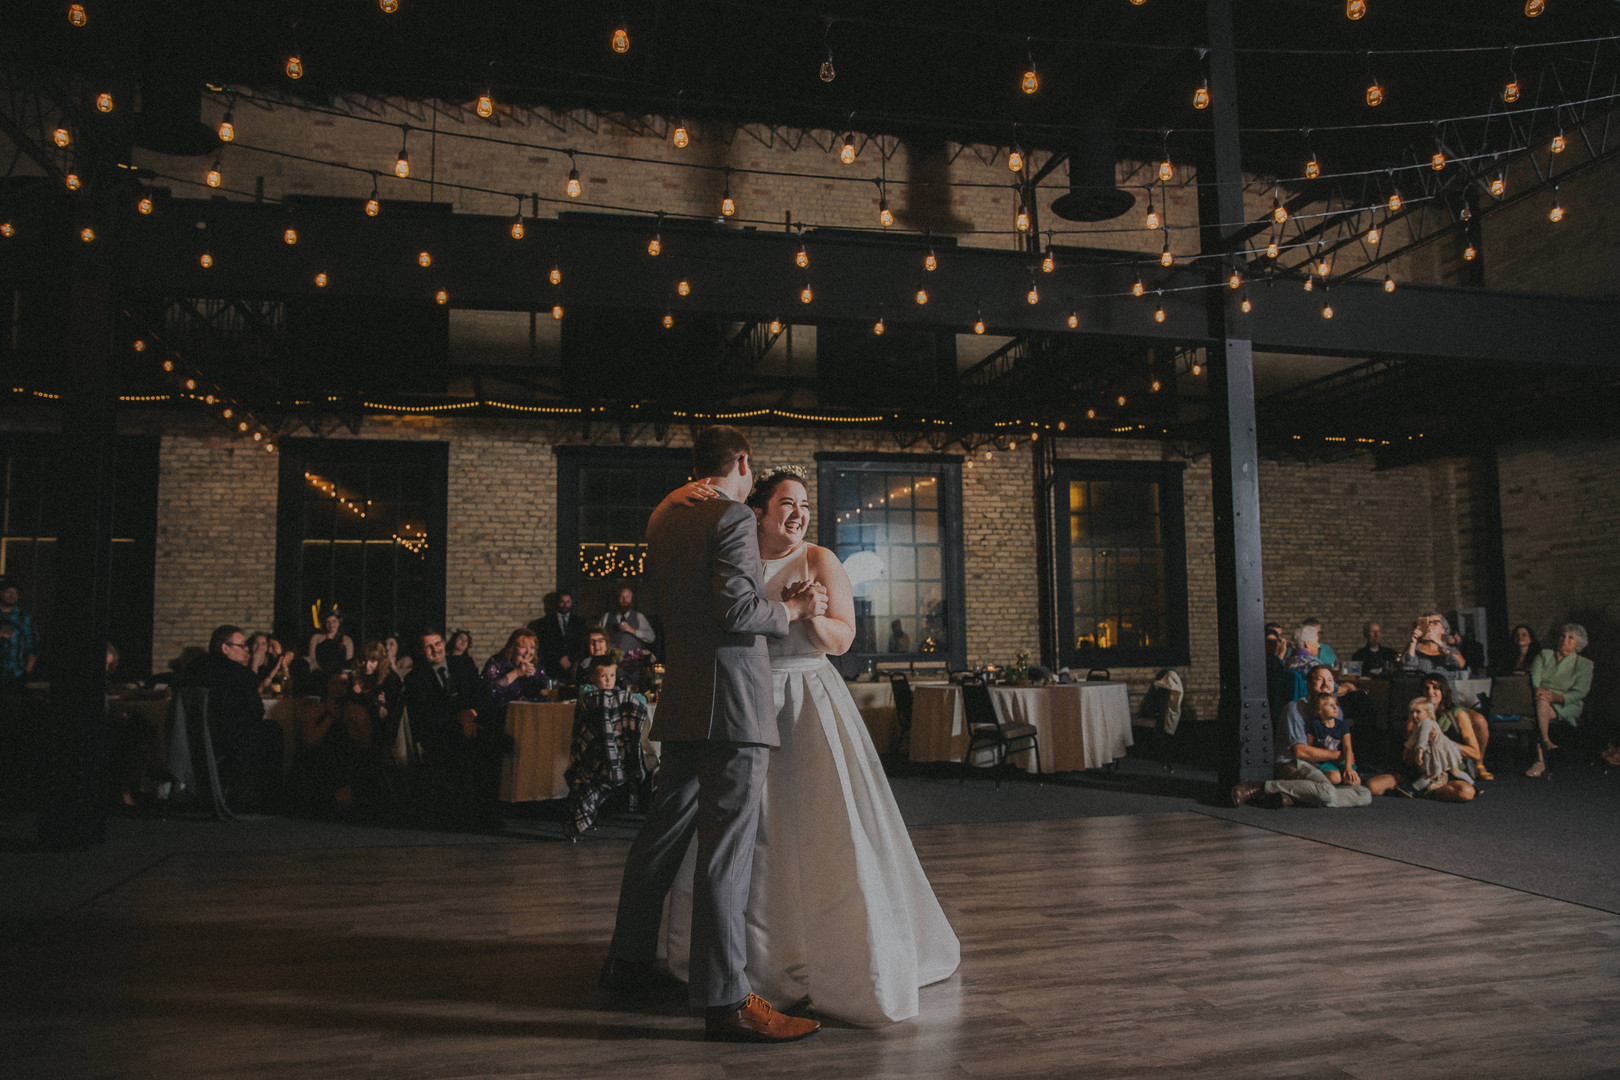 A groom and bride share their first dance together at The Berkshire Sheboygan